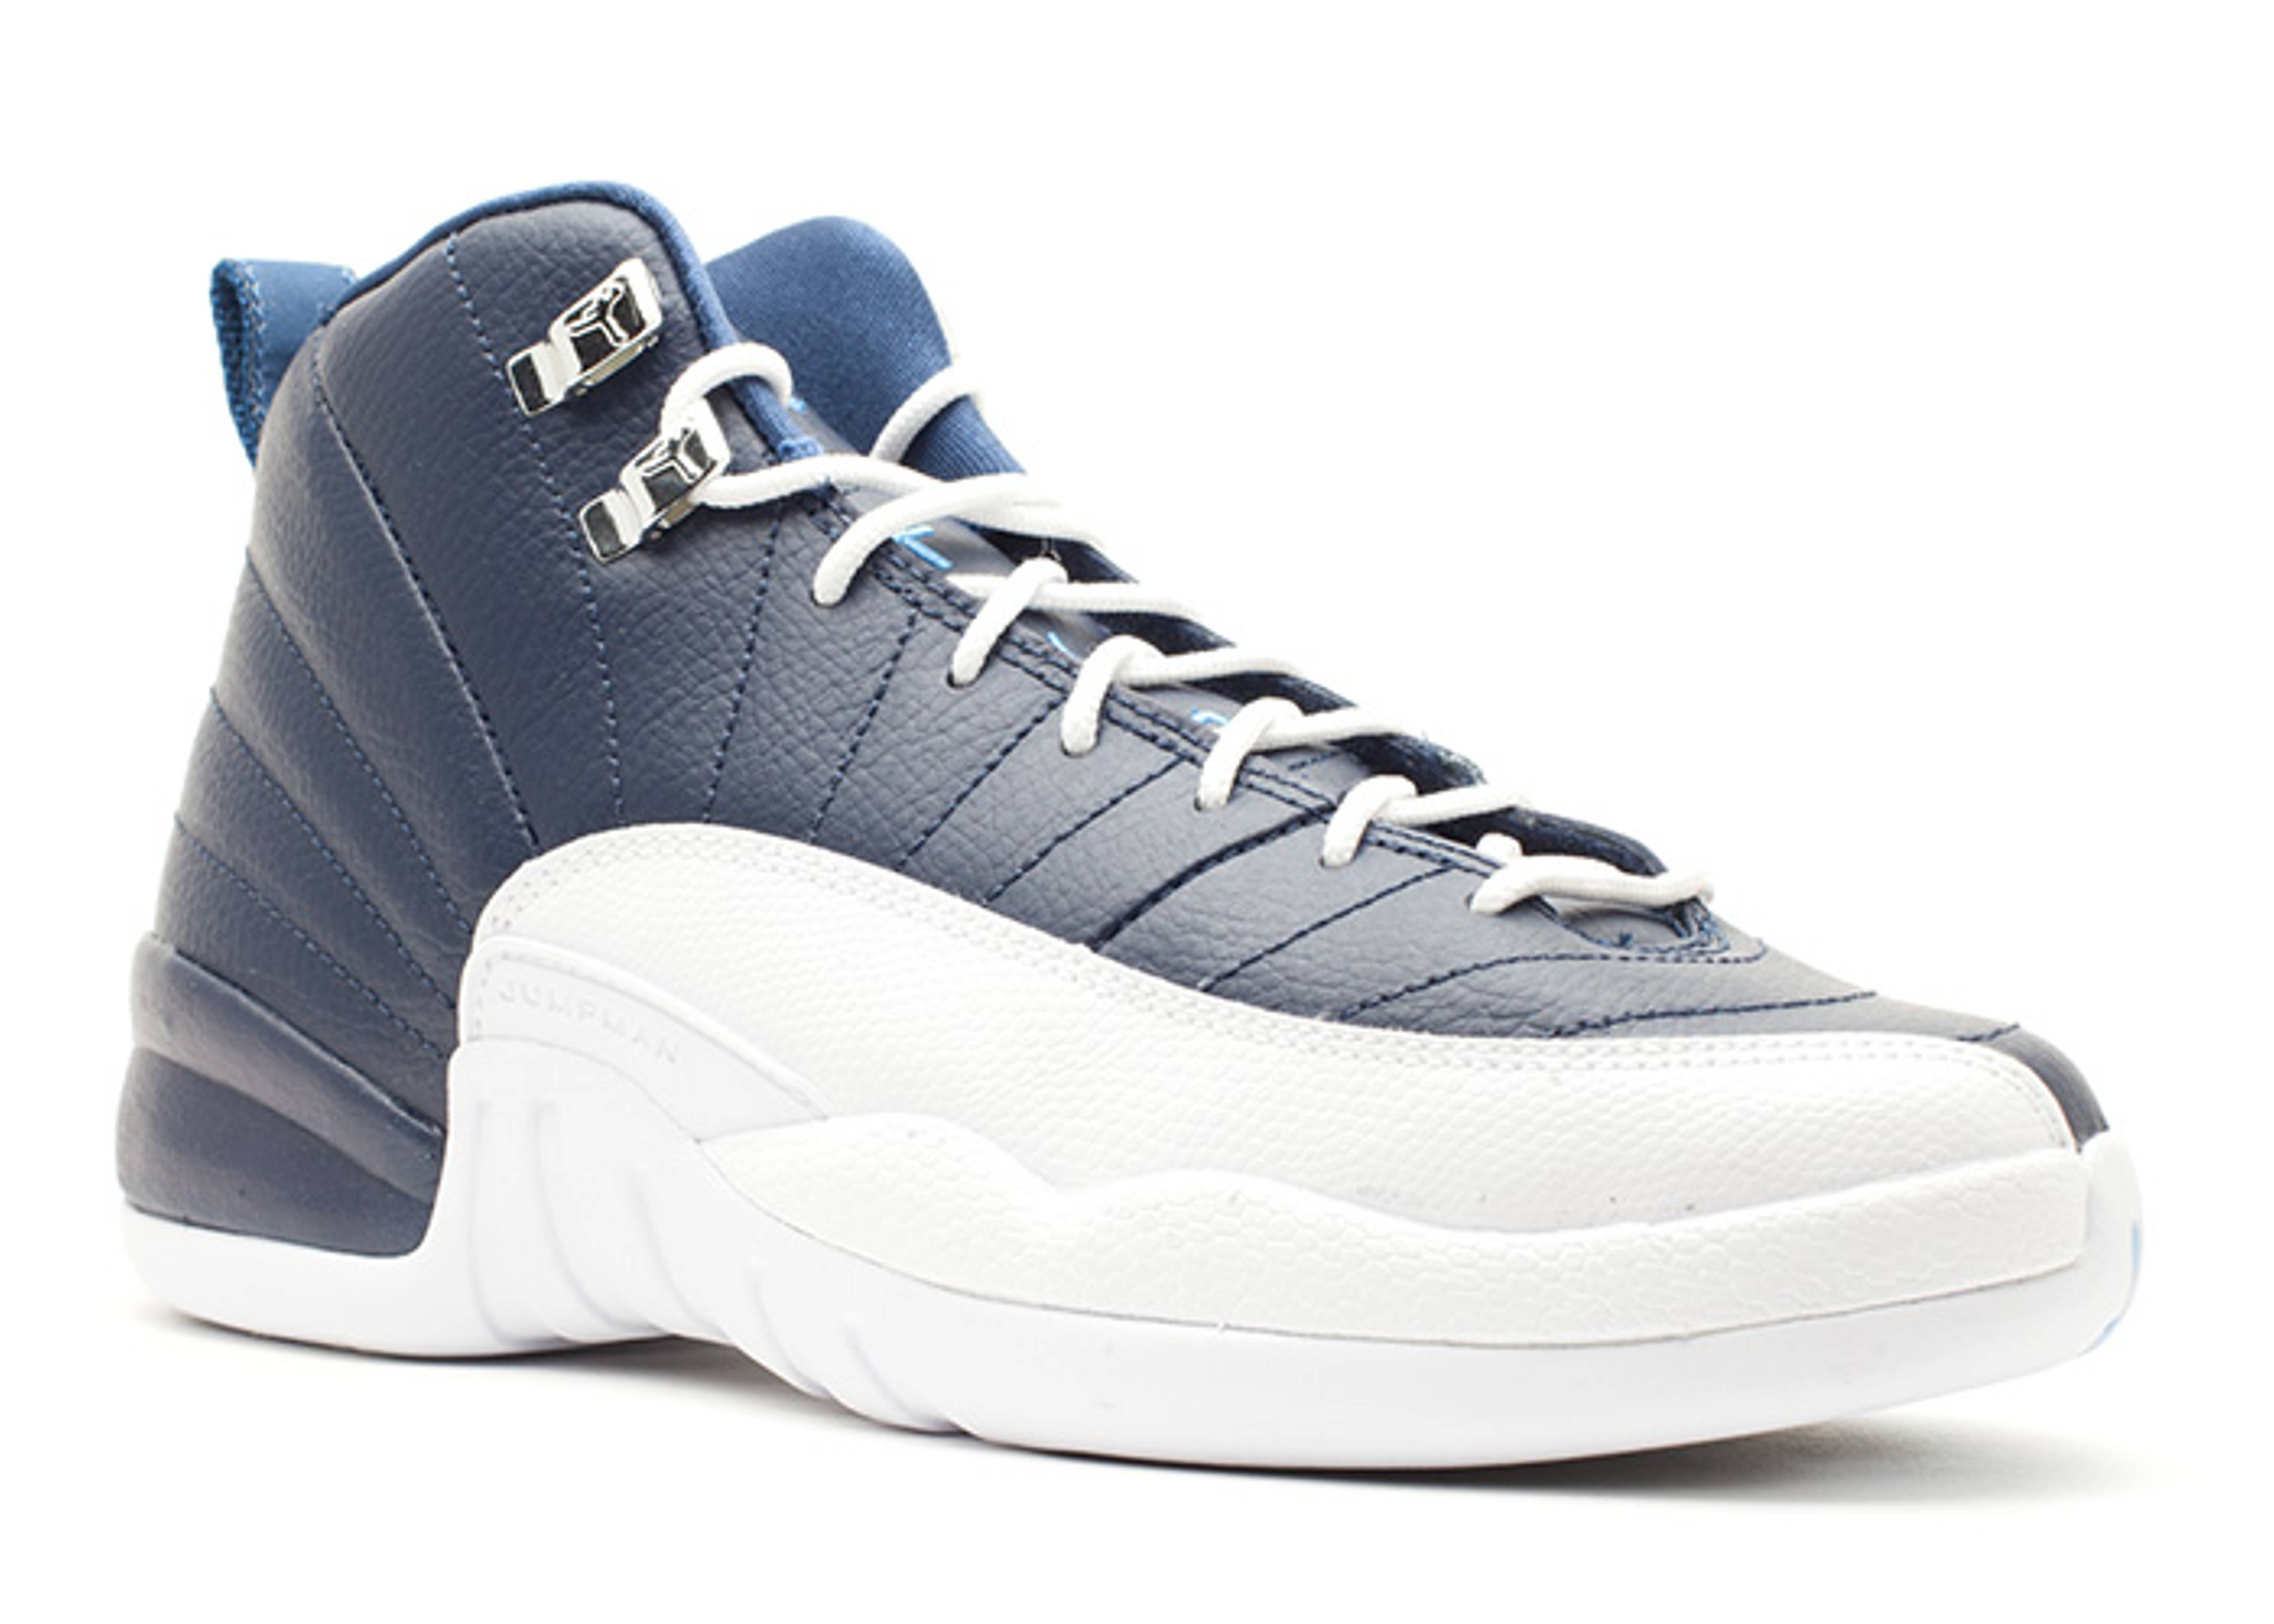 08d50dd33a1 Air Jordan French Blue 9 2012 Jordan 13 Flint